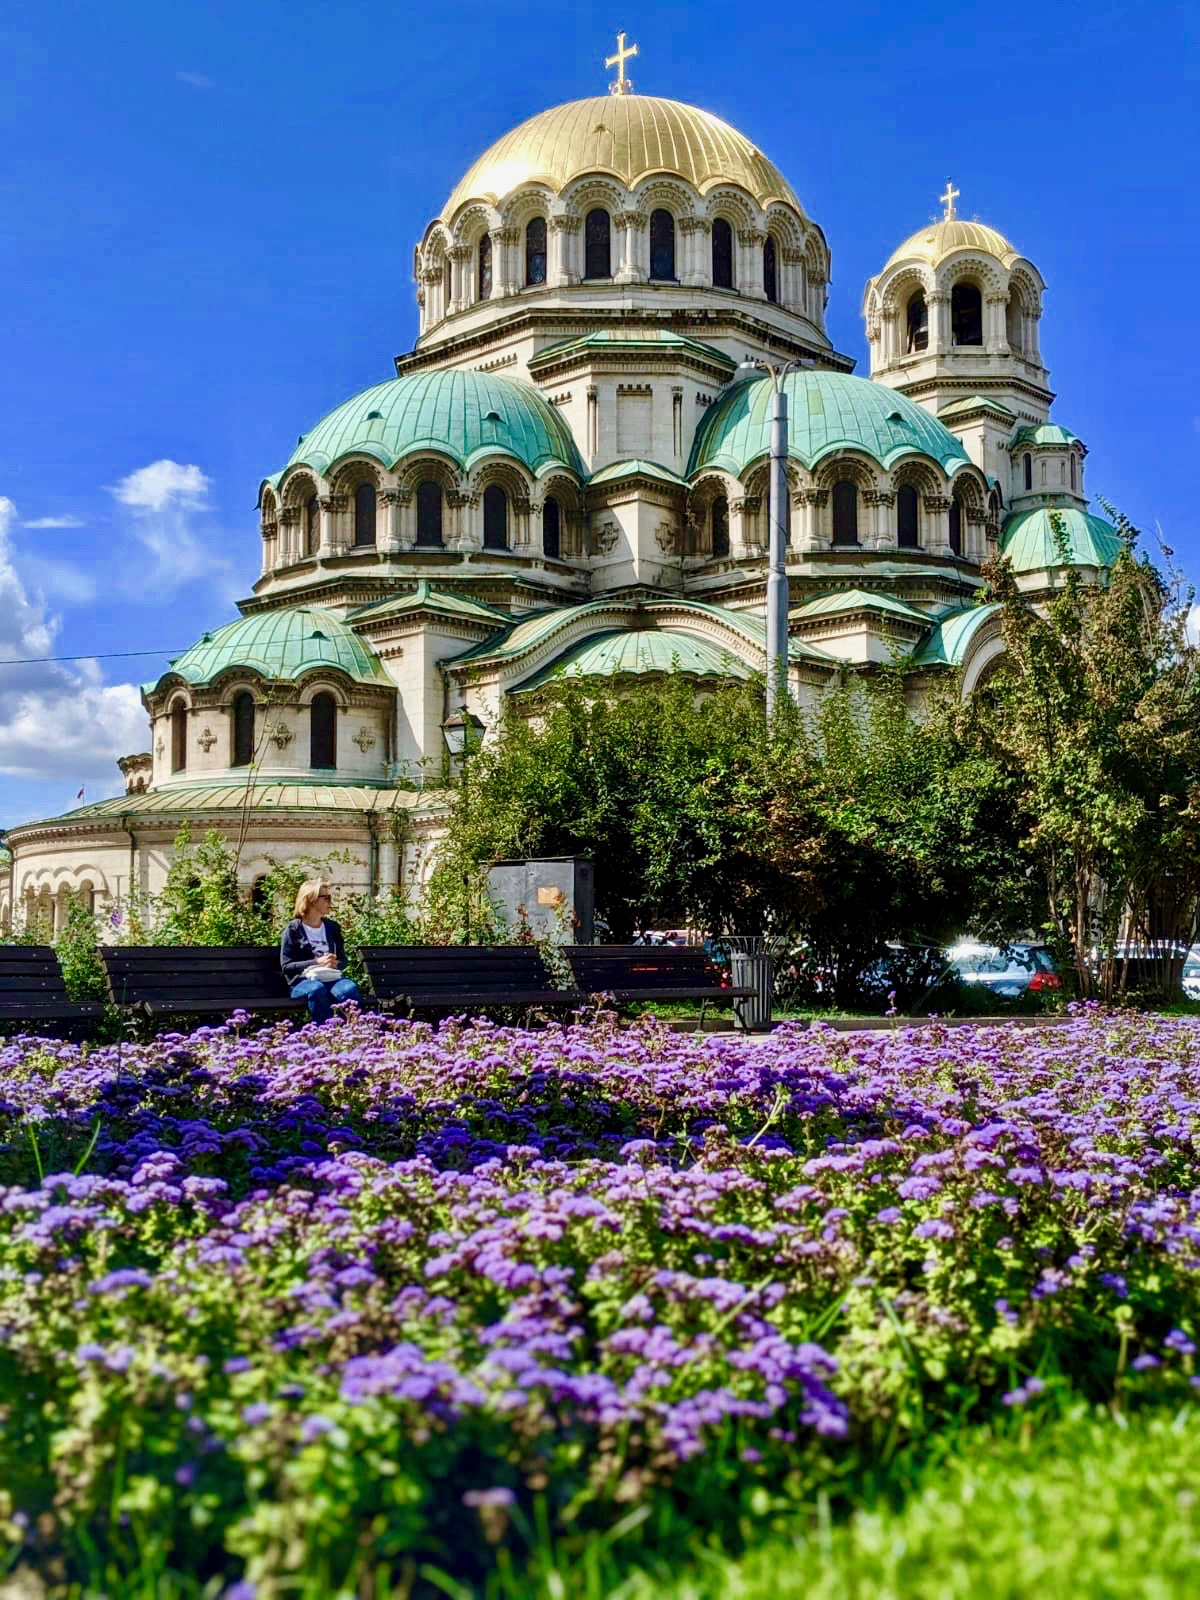 A picture of the Alexander Nevsky cathedral in Sofia with purple flowers in the foreground